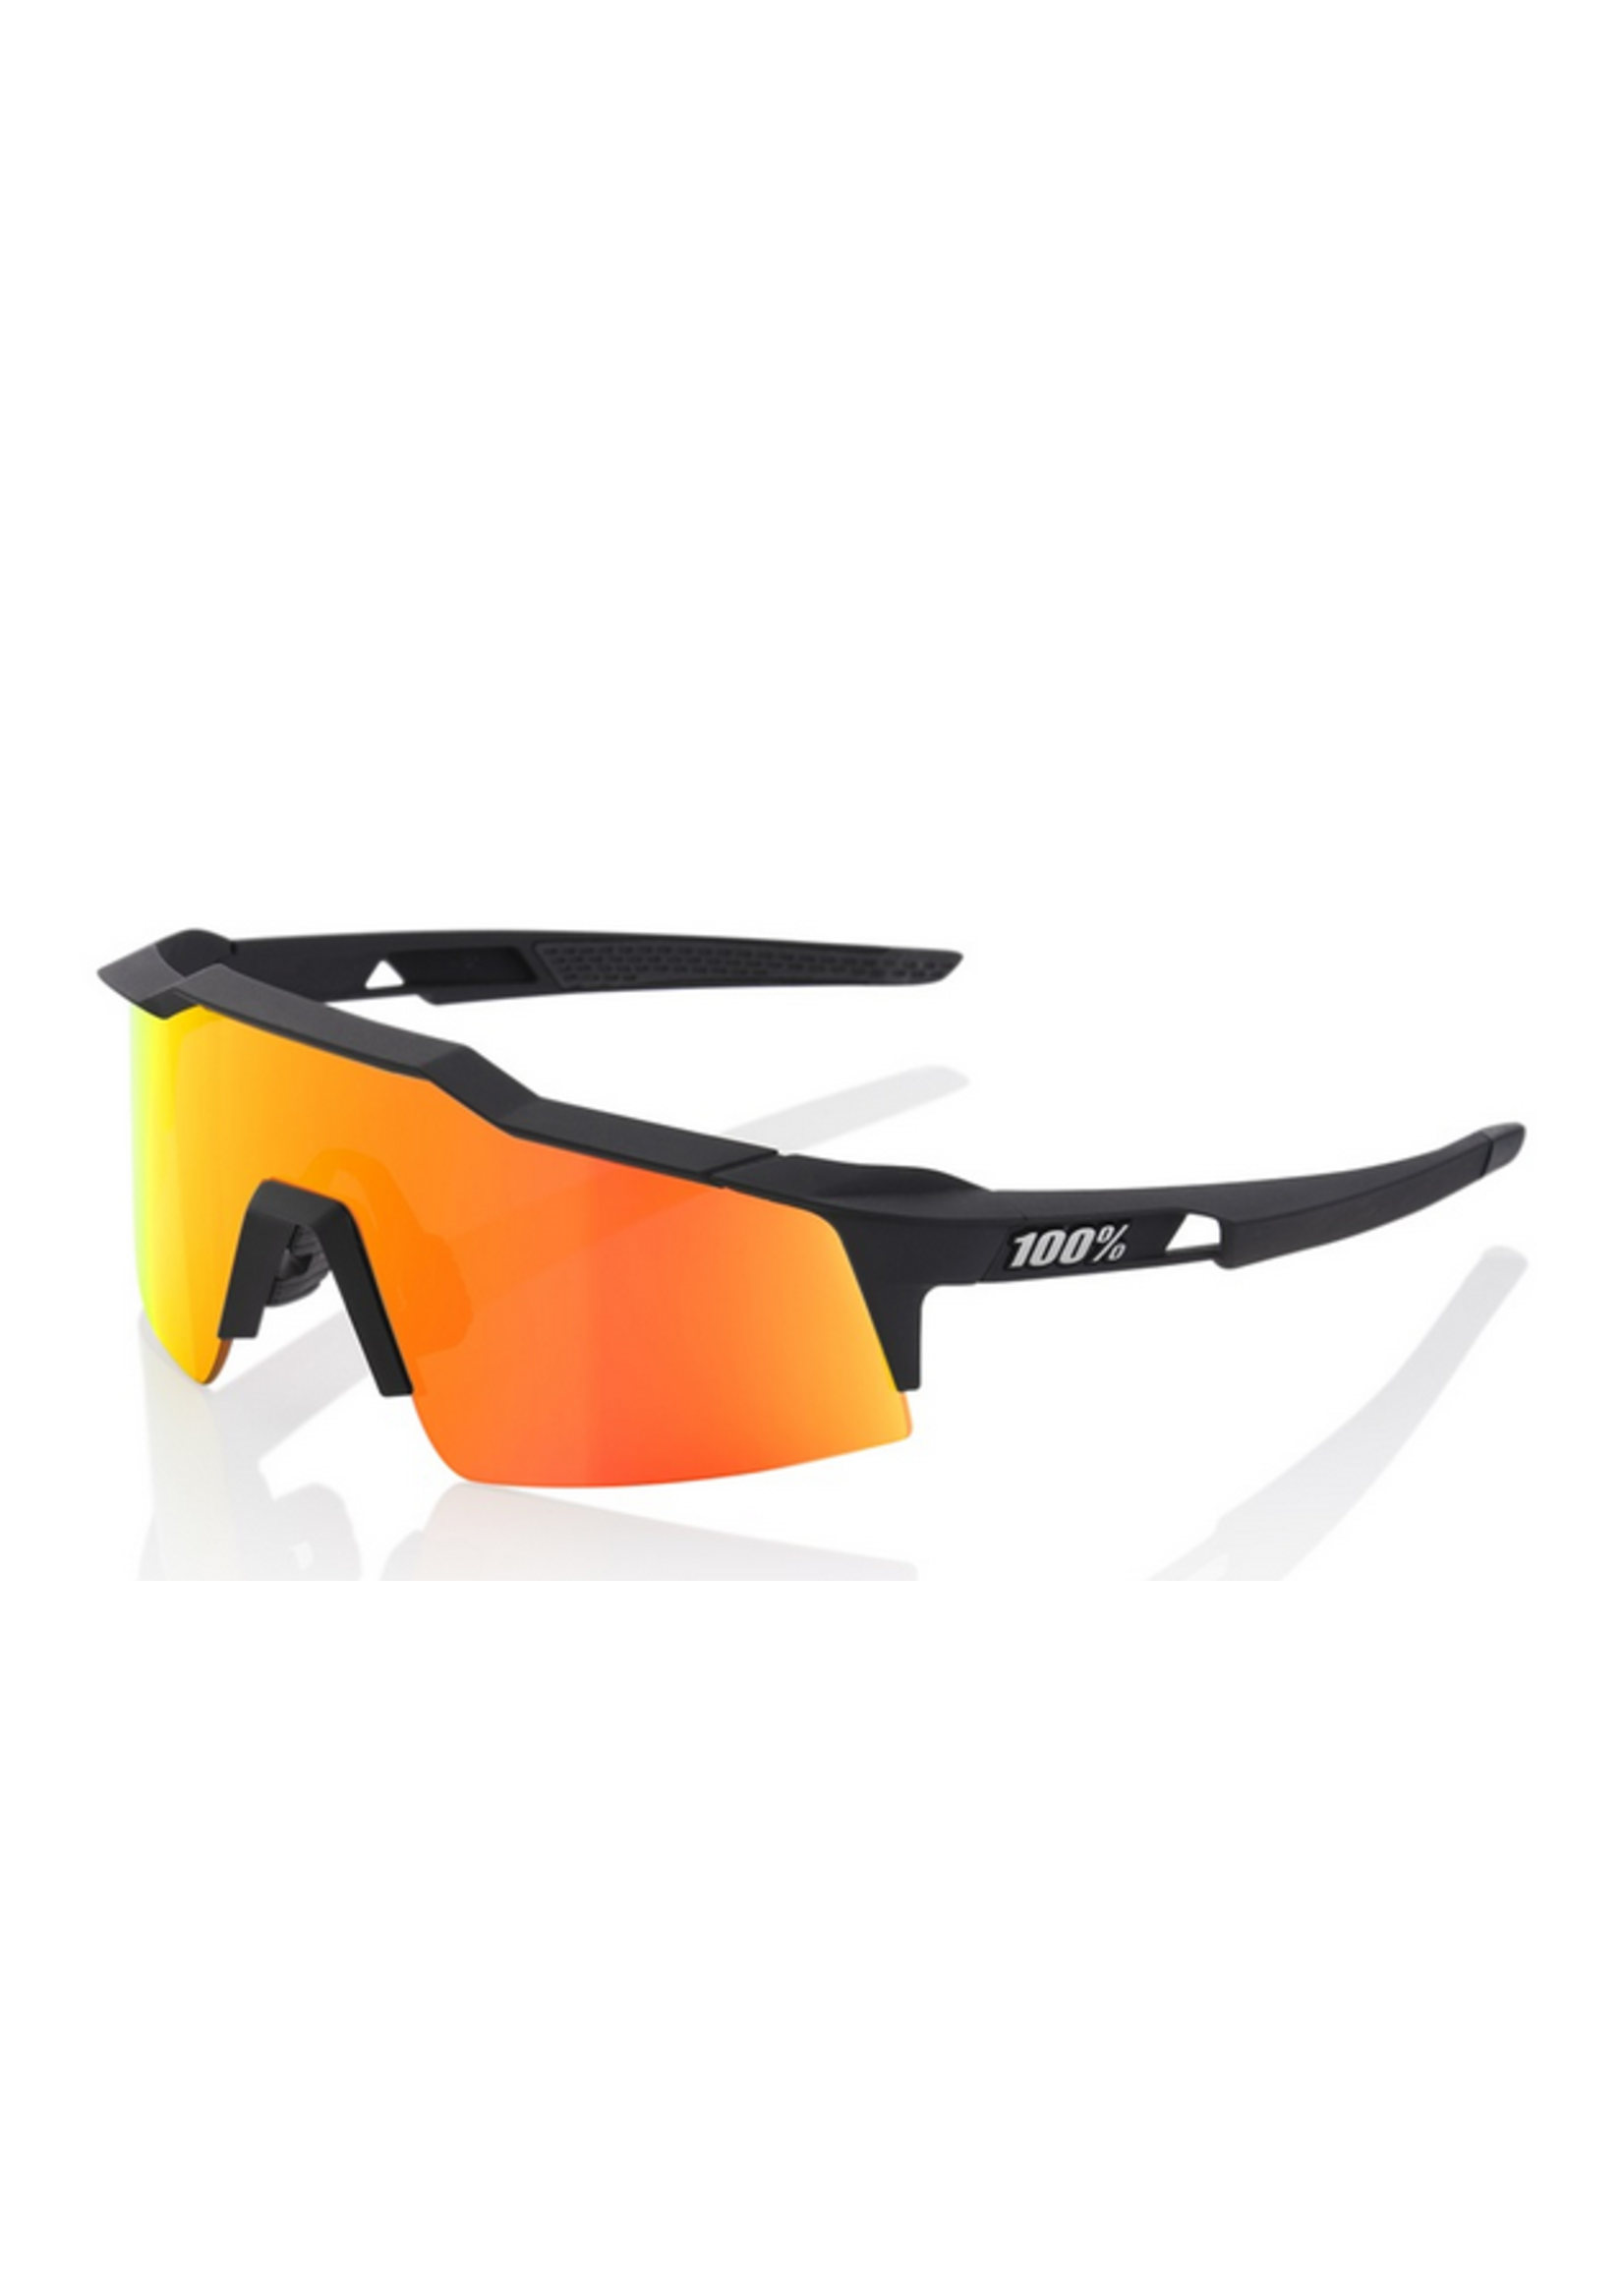 100% 100% Speedcraft SL Sunglasses